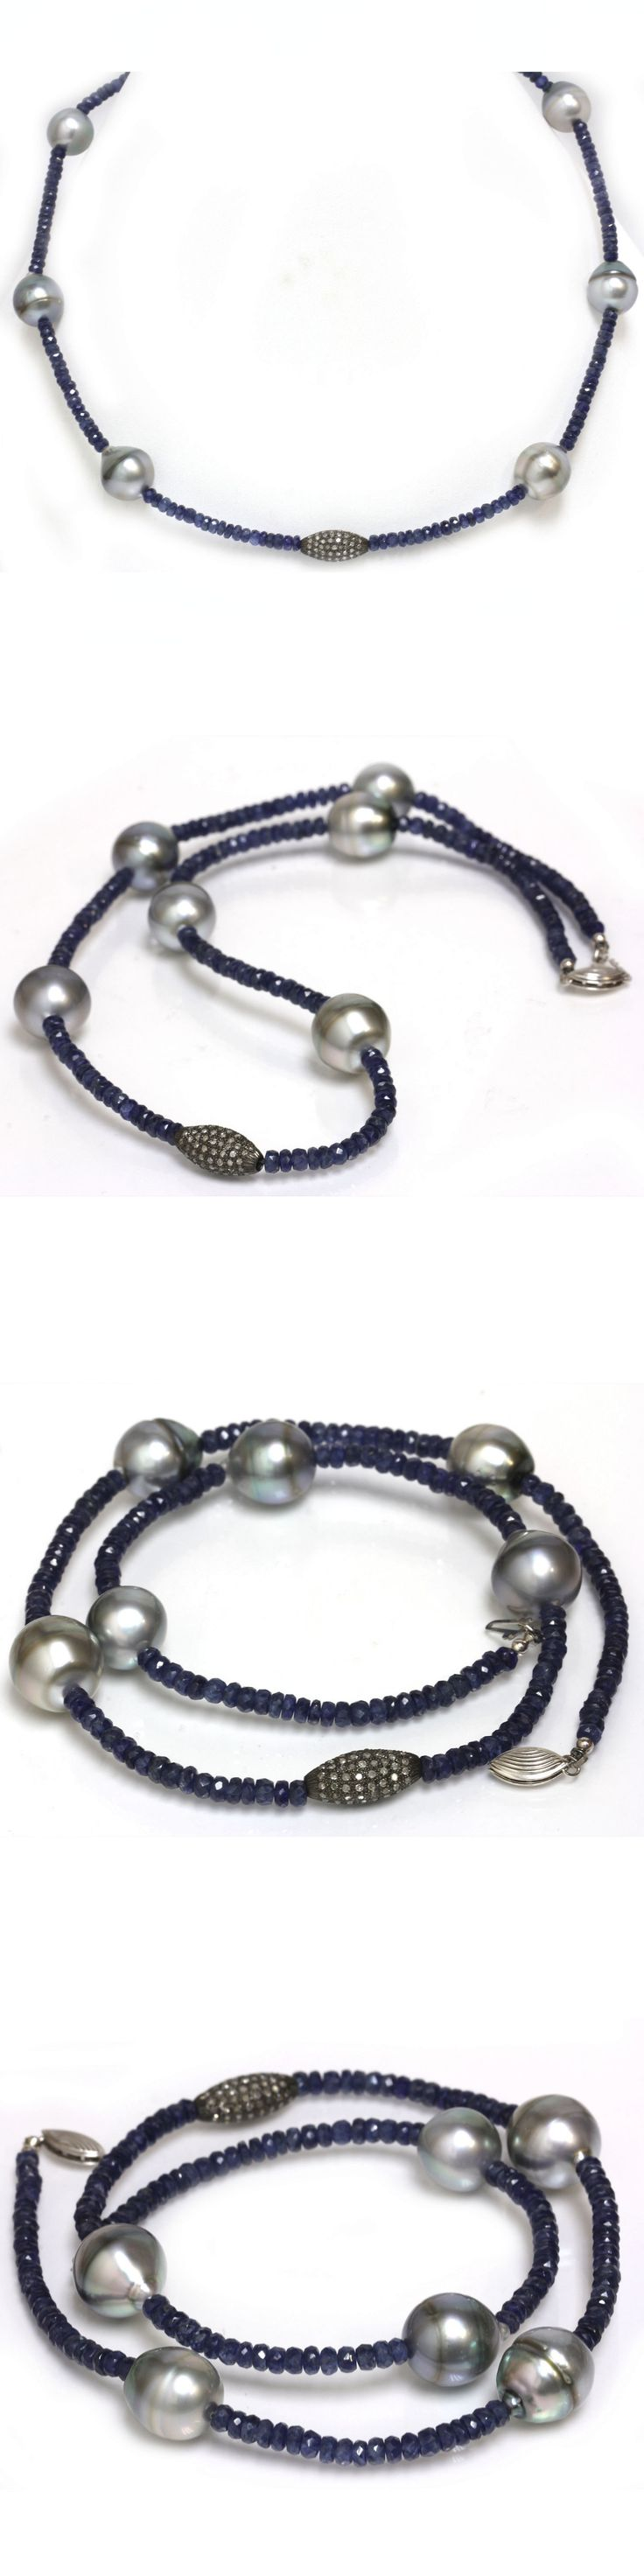 Pearl 164333: Diamond Tahitian Pearl Sapphire Necklace 14Kt White Gold Clasp 18 1 2 -> BUY IT NOW ONLY: $750 on eBay!